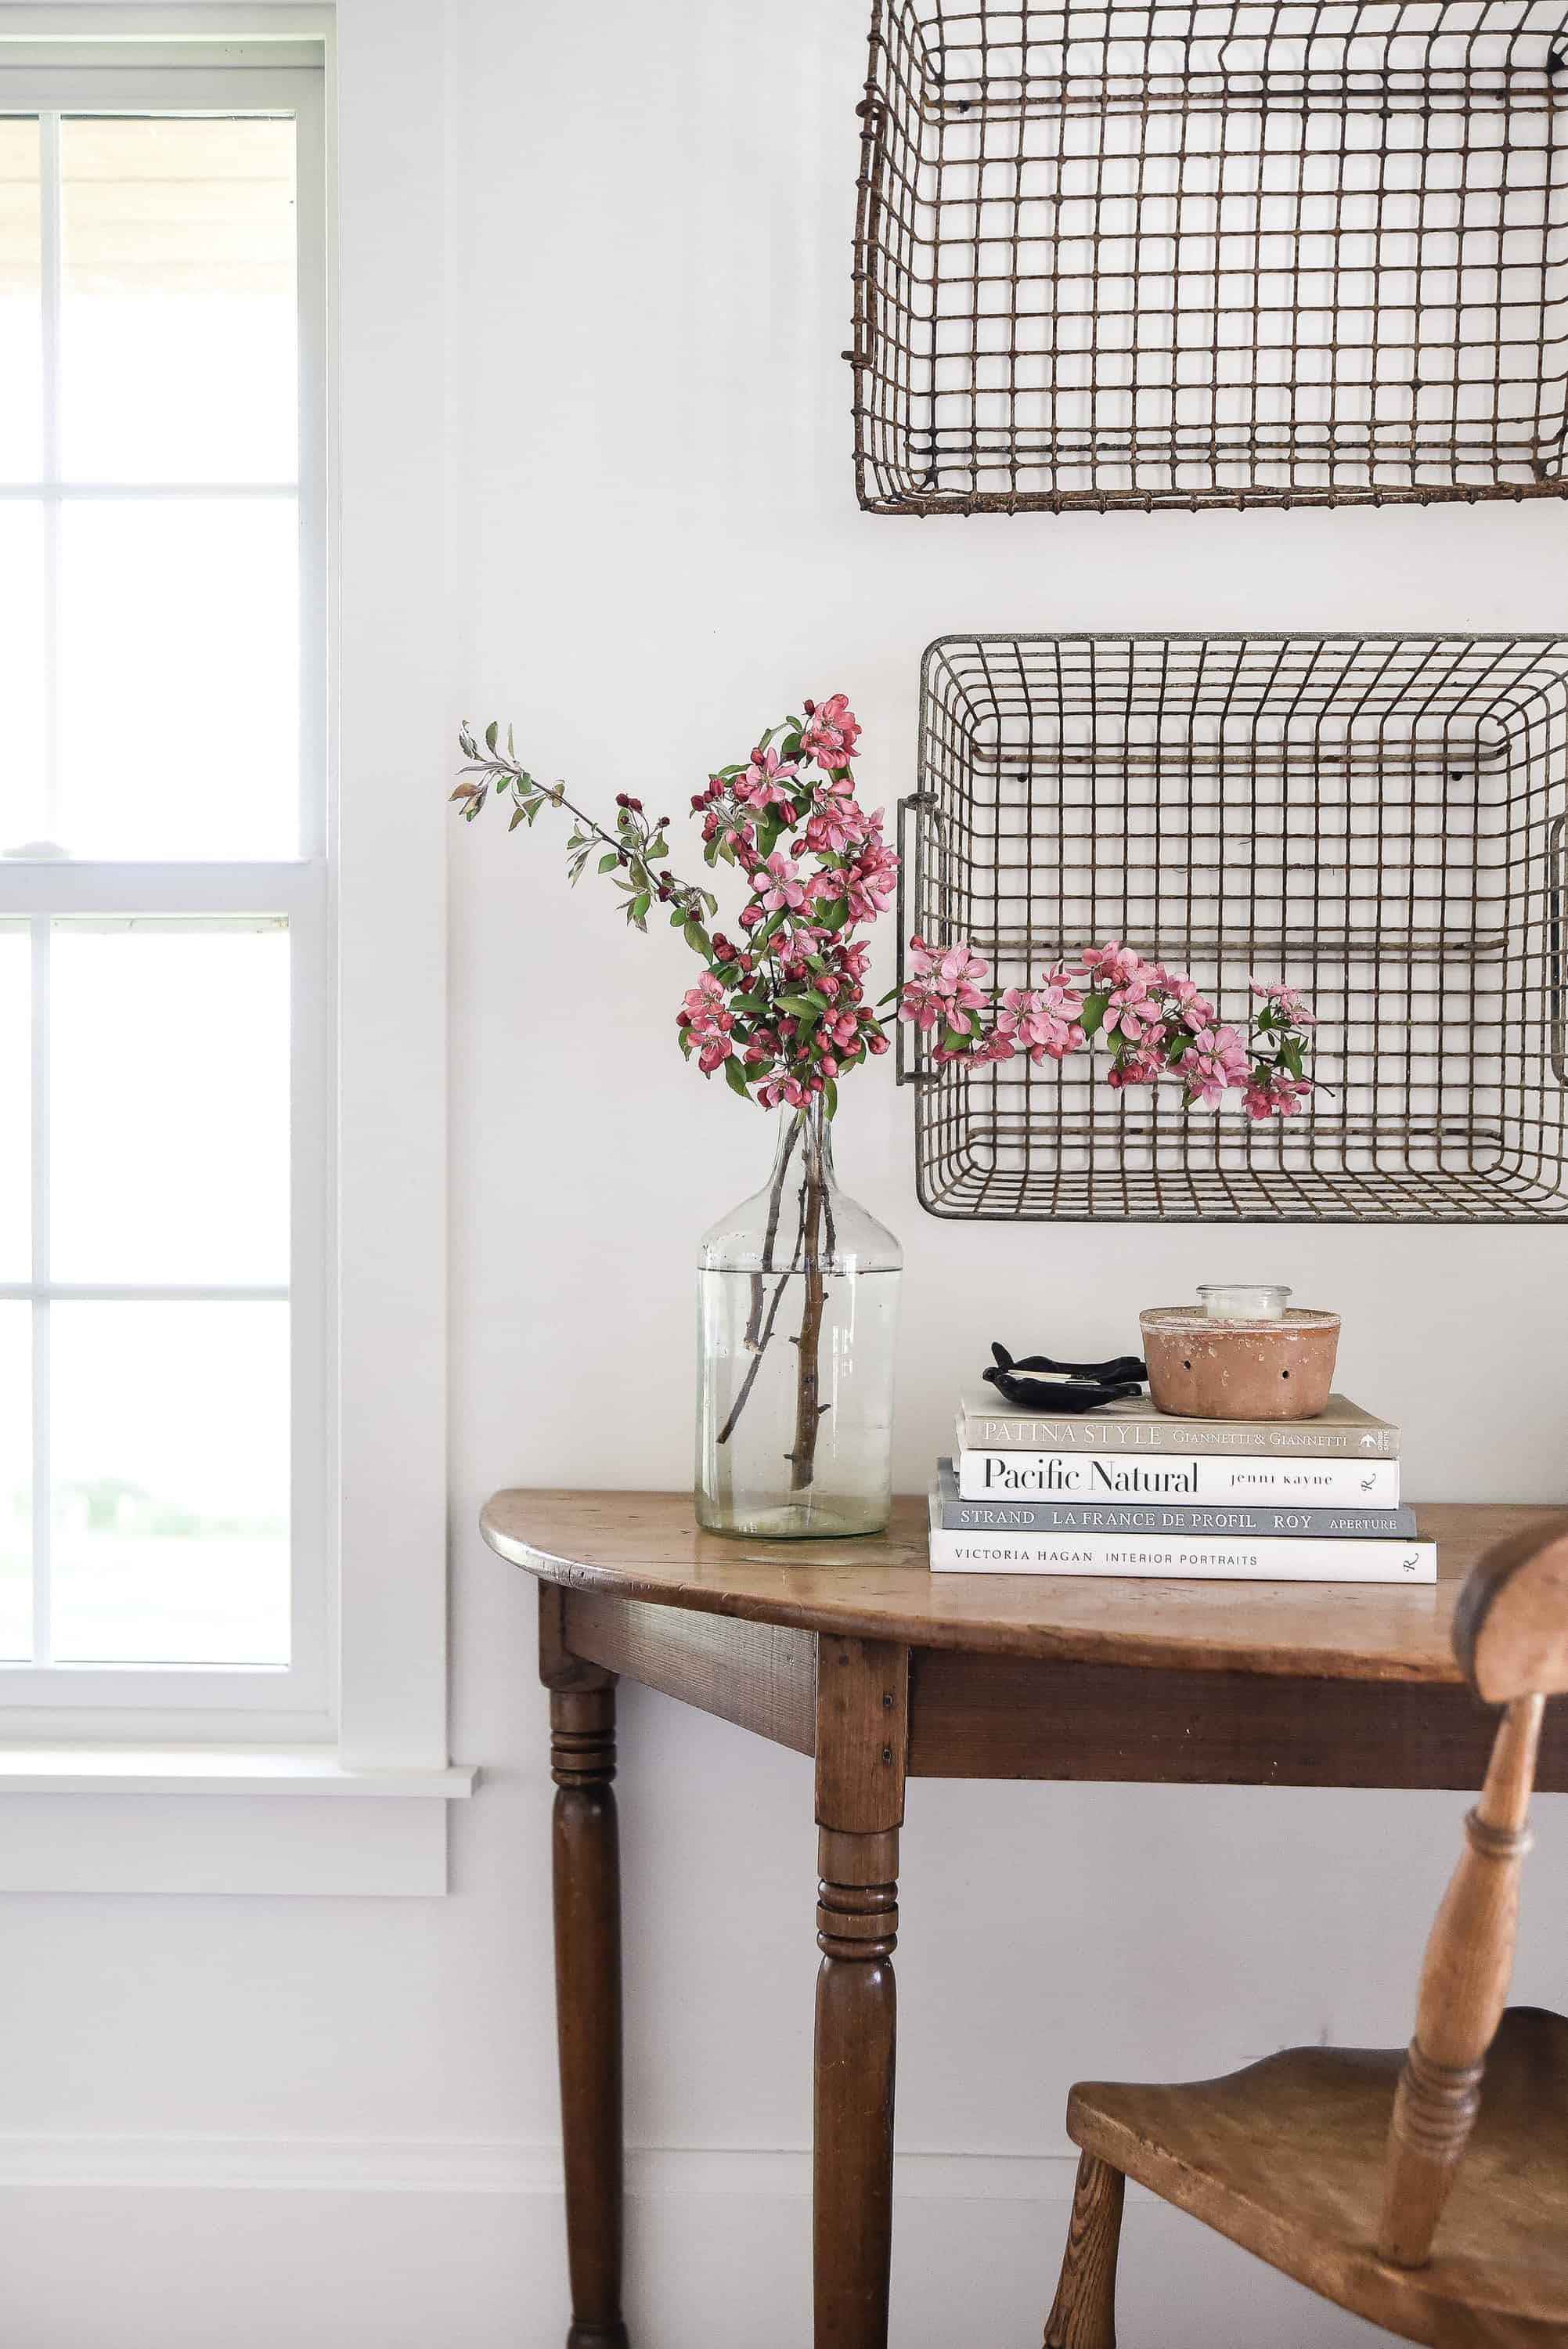 As the weather warms up, freshen up your home with some simple summer home decorating ideas!